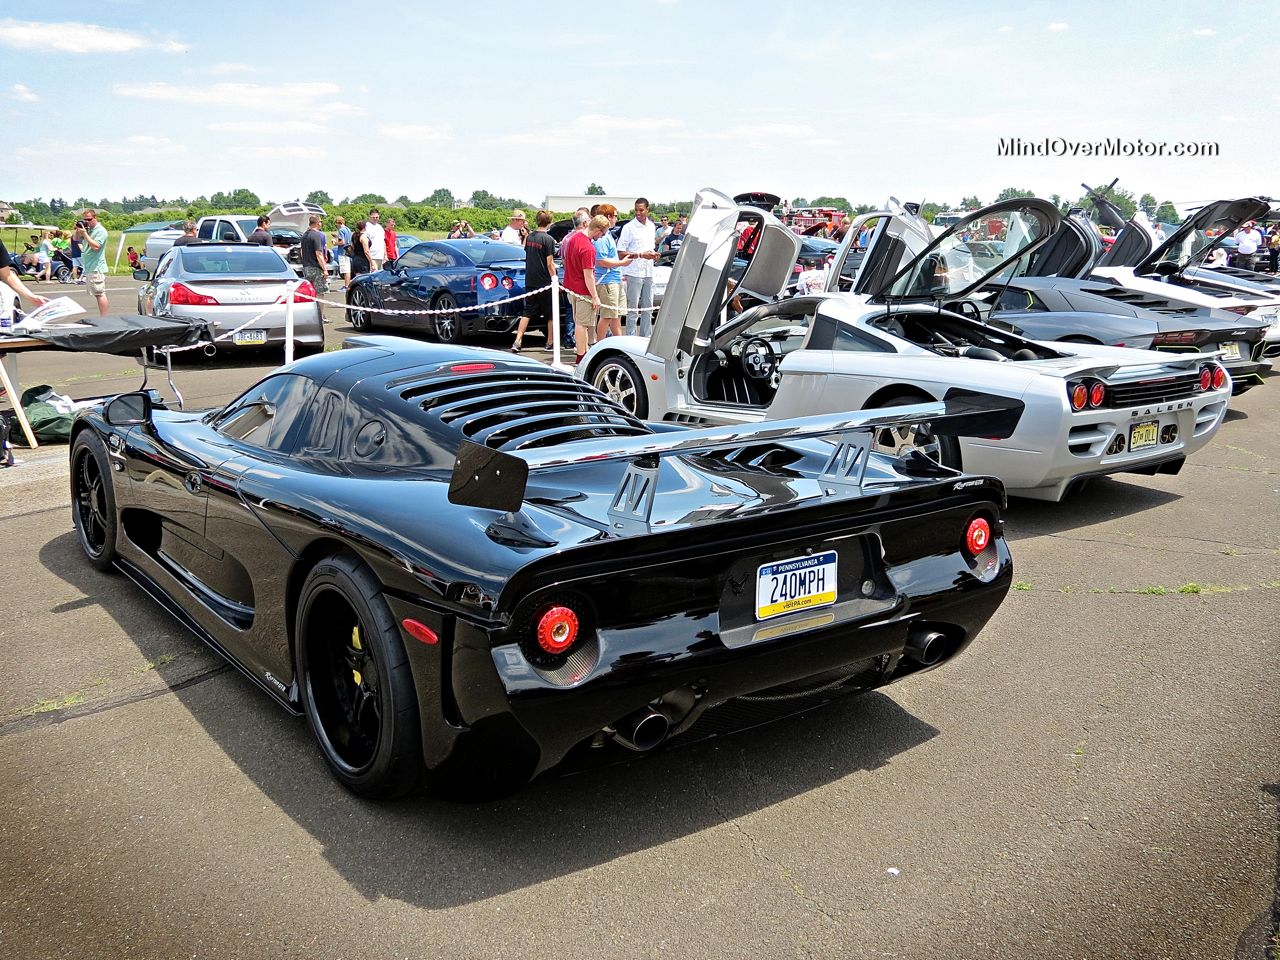 Mosler Raptor GTR and Saleen S7 at CF Charities